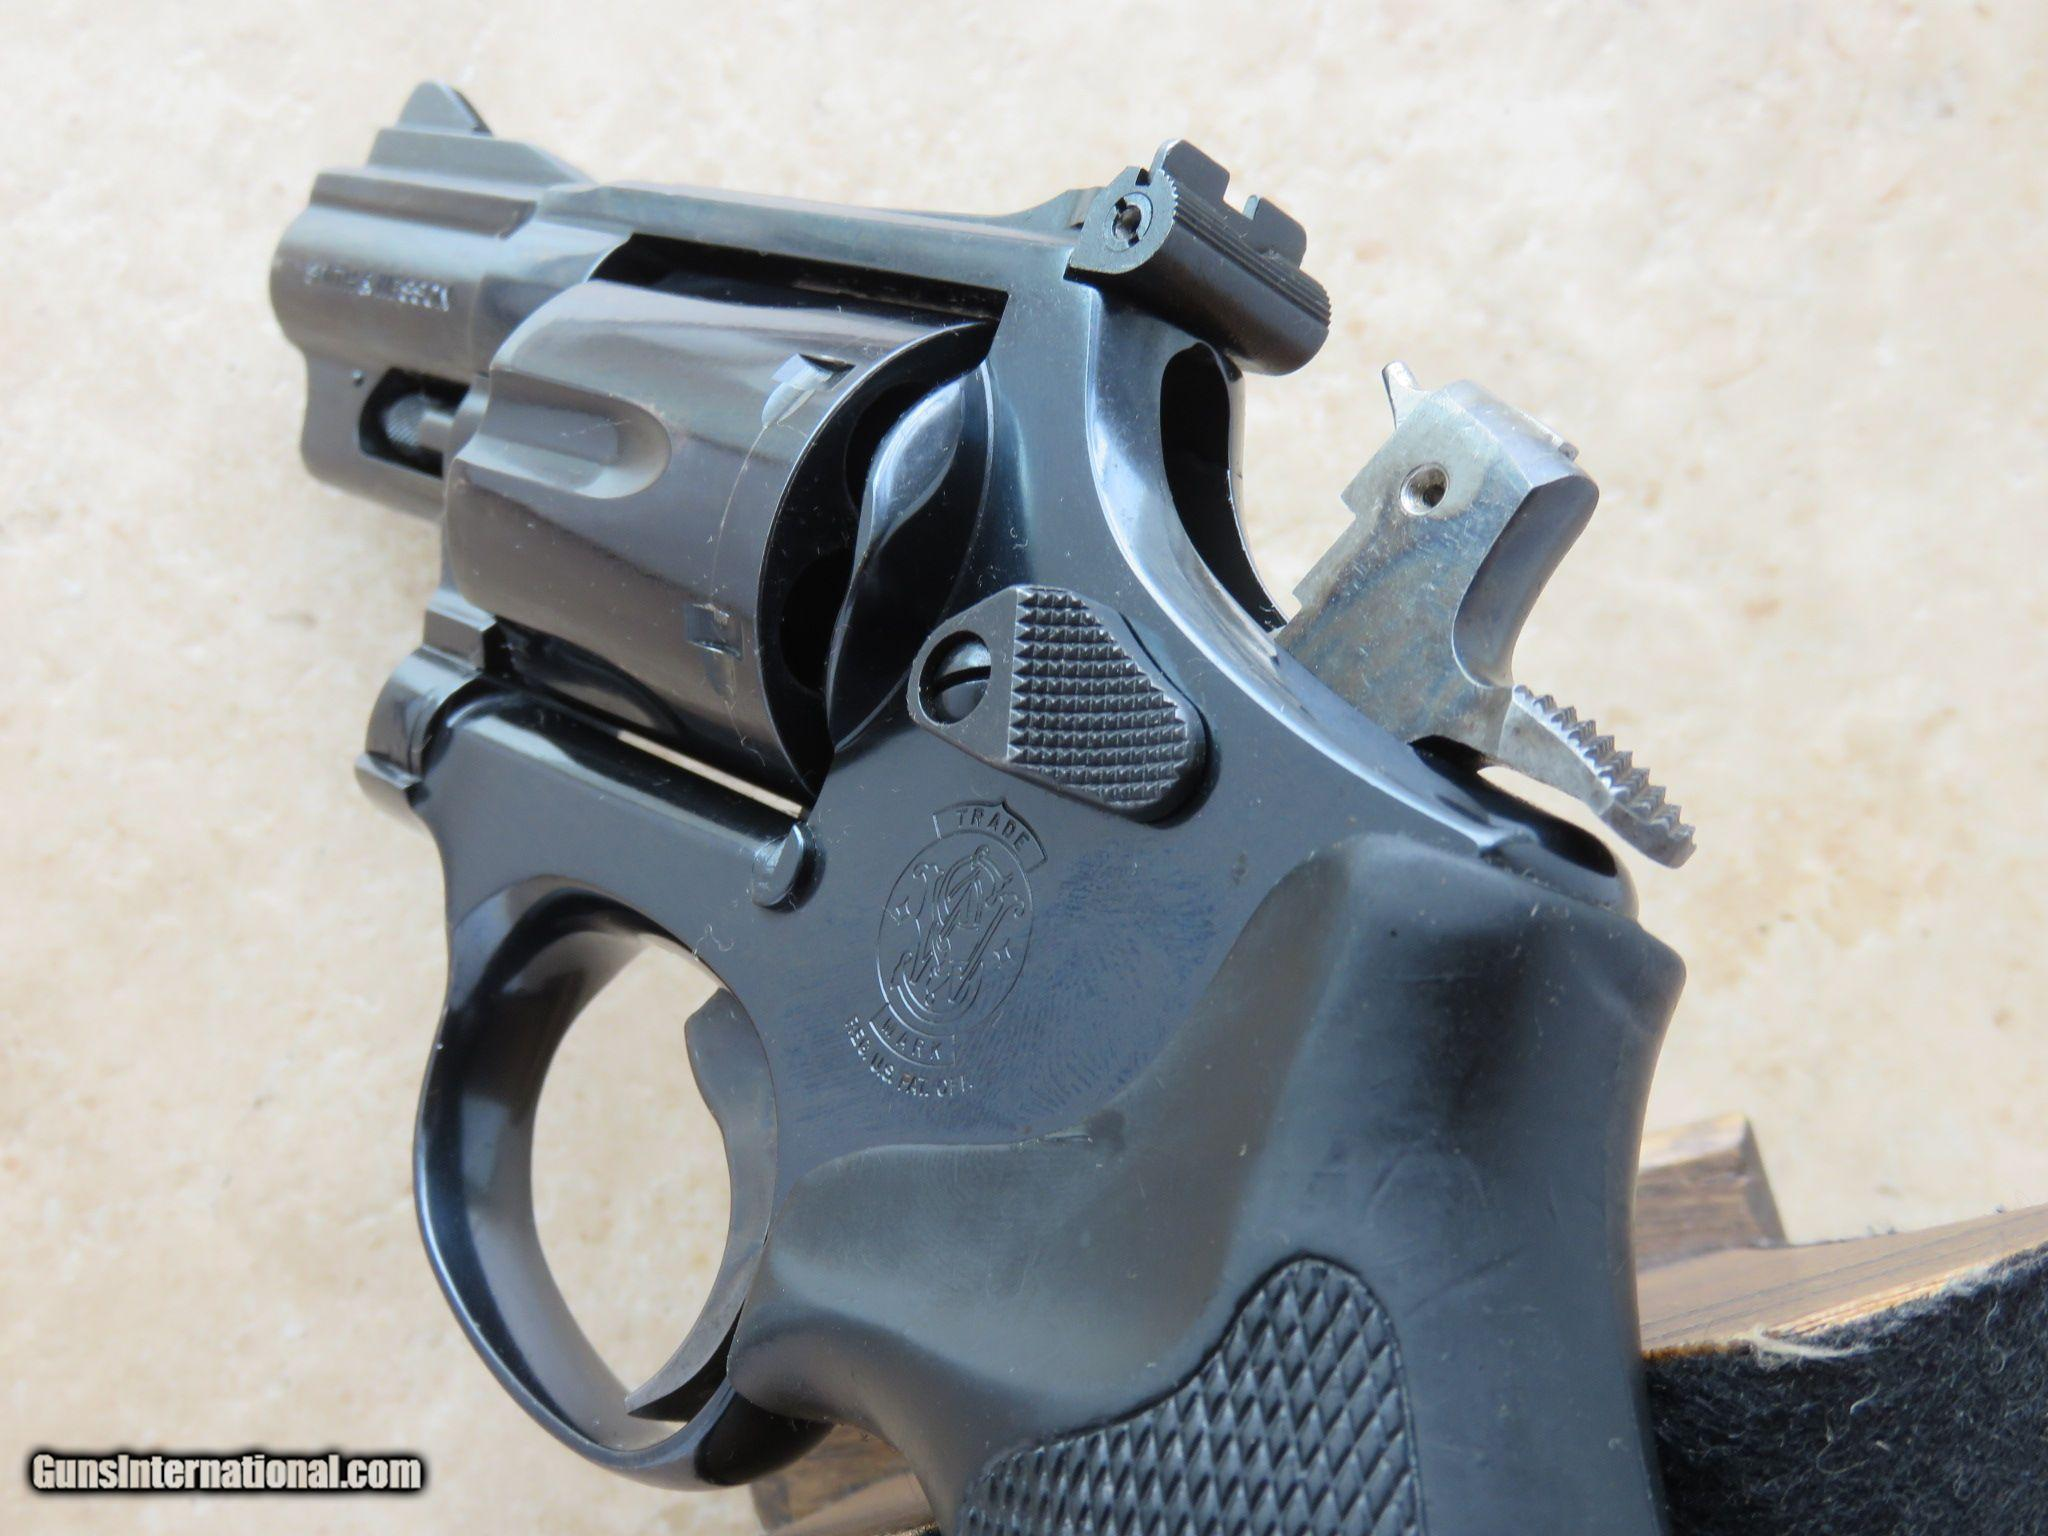 1997 Smith & Wesson Model 19-7 2 5